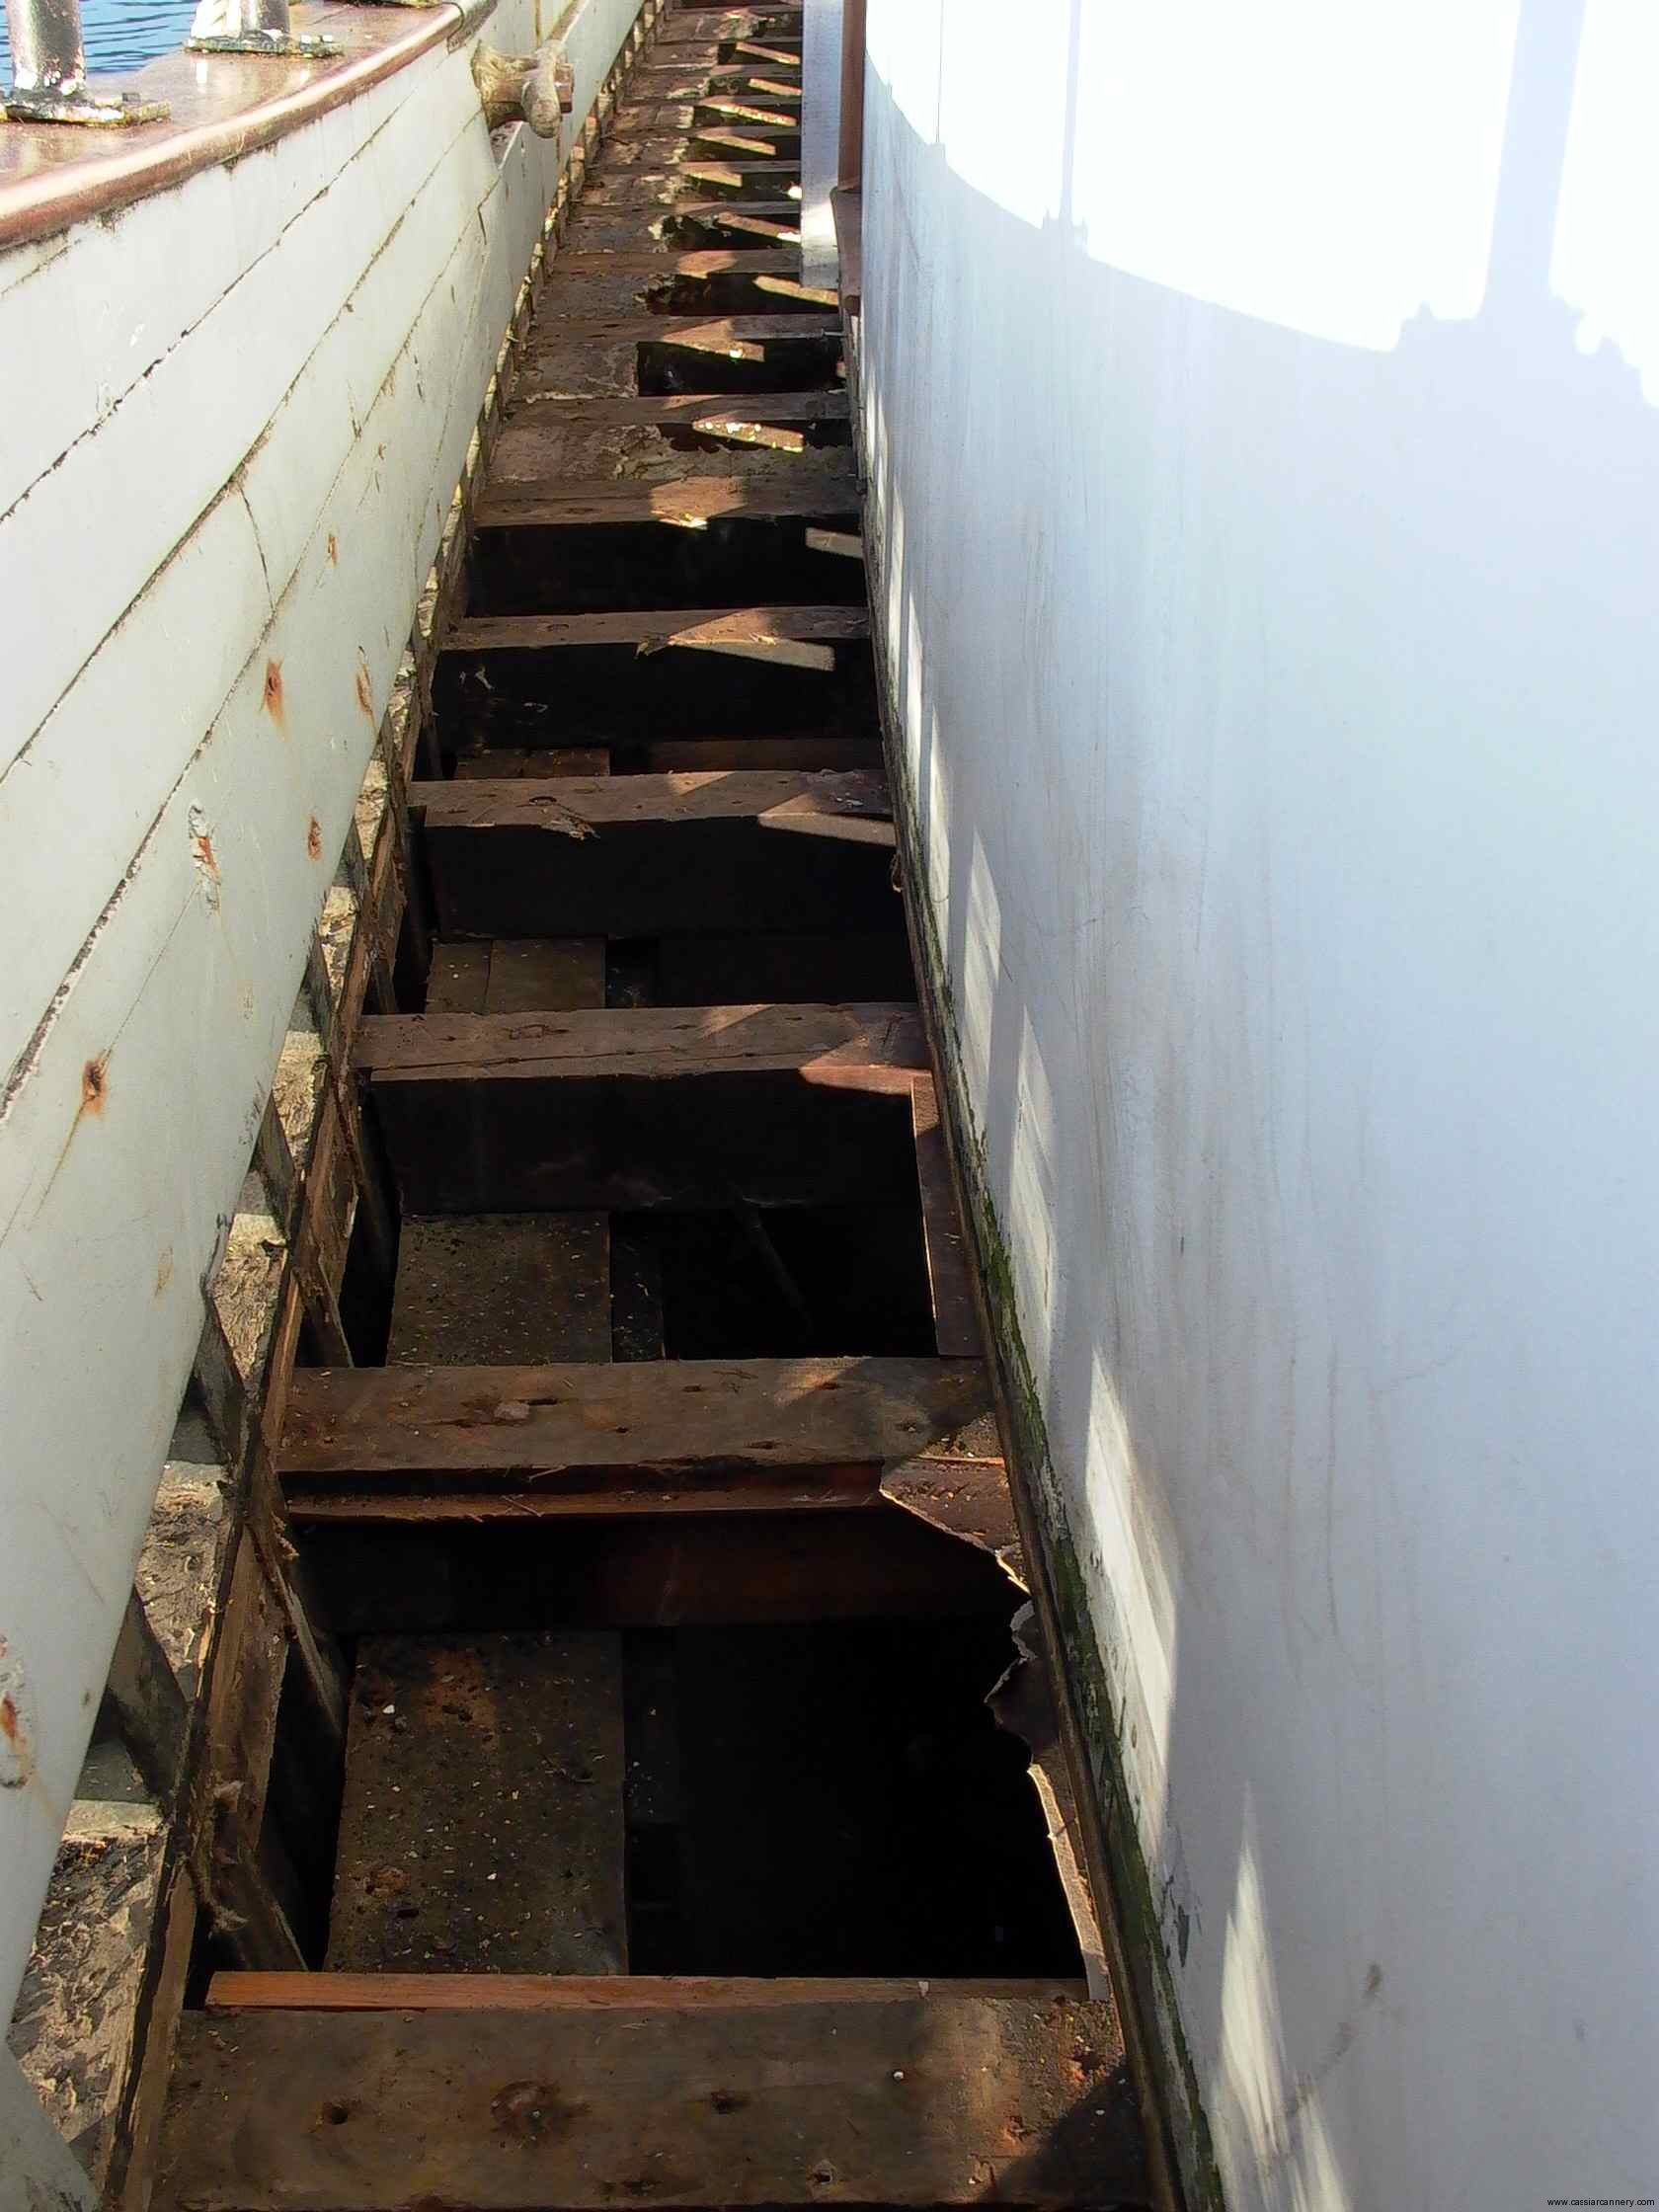 Cassiar Cannery - Poseidon Marine - Michelle Marie - jack beams in great condition